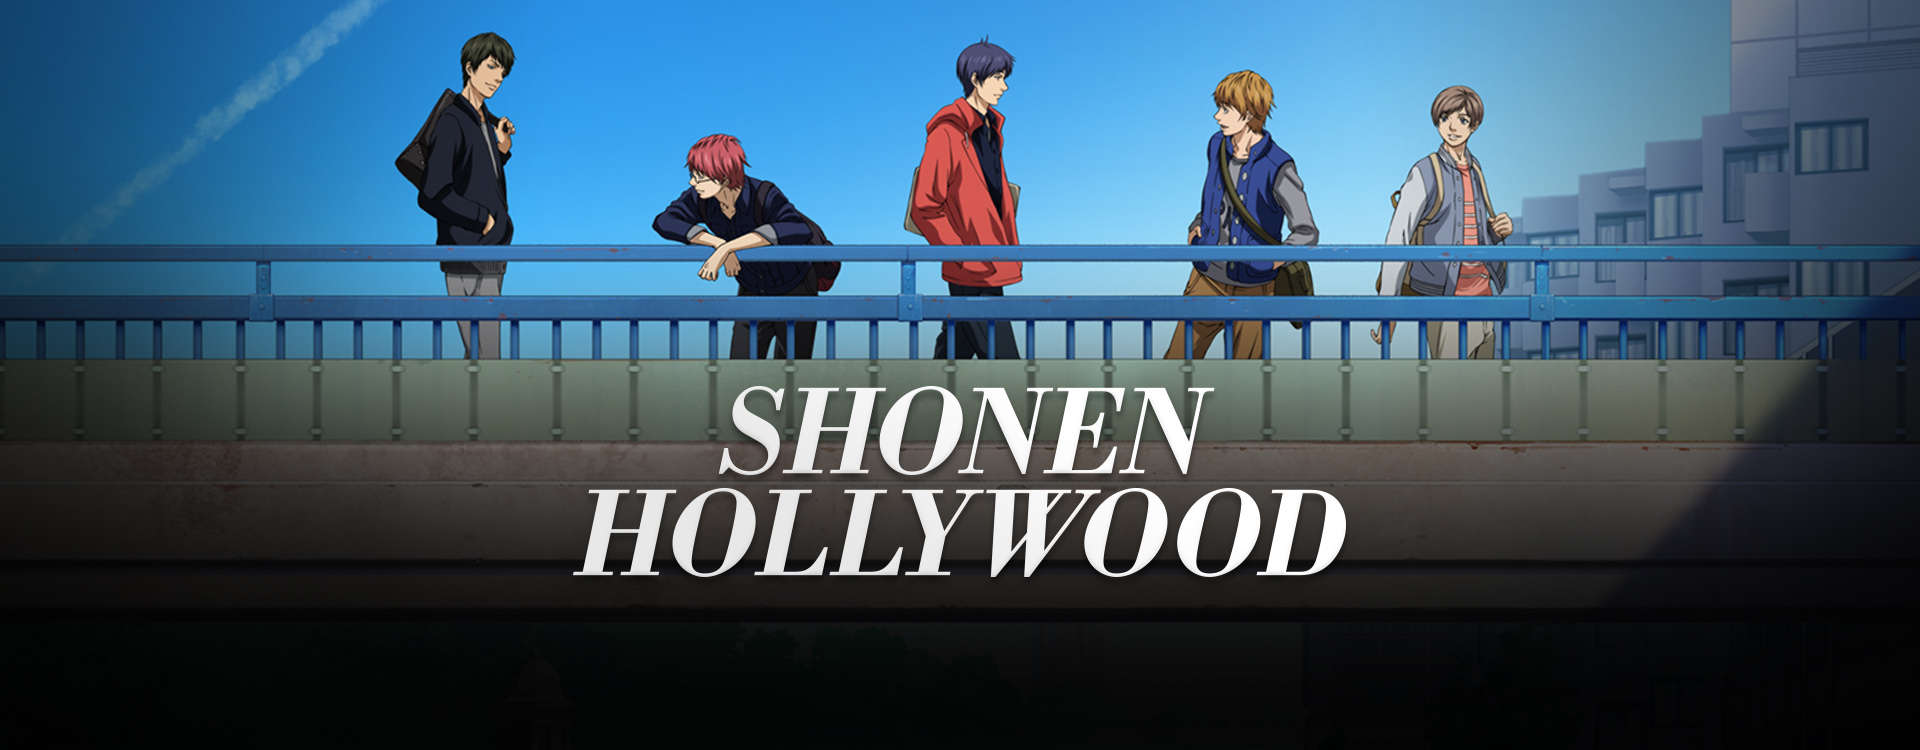 SHONEN HOLLYWOOD -HOLLY STAGE FOR 49-